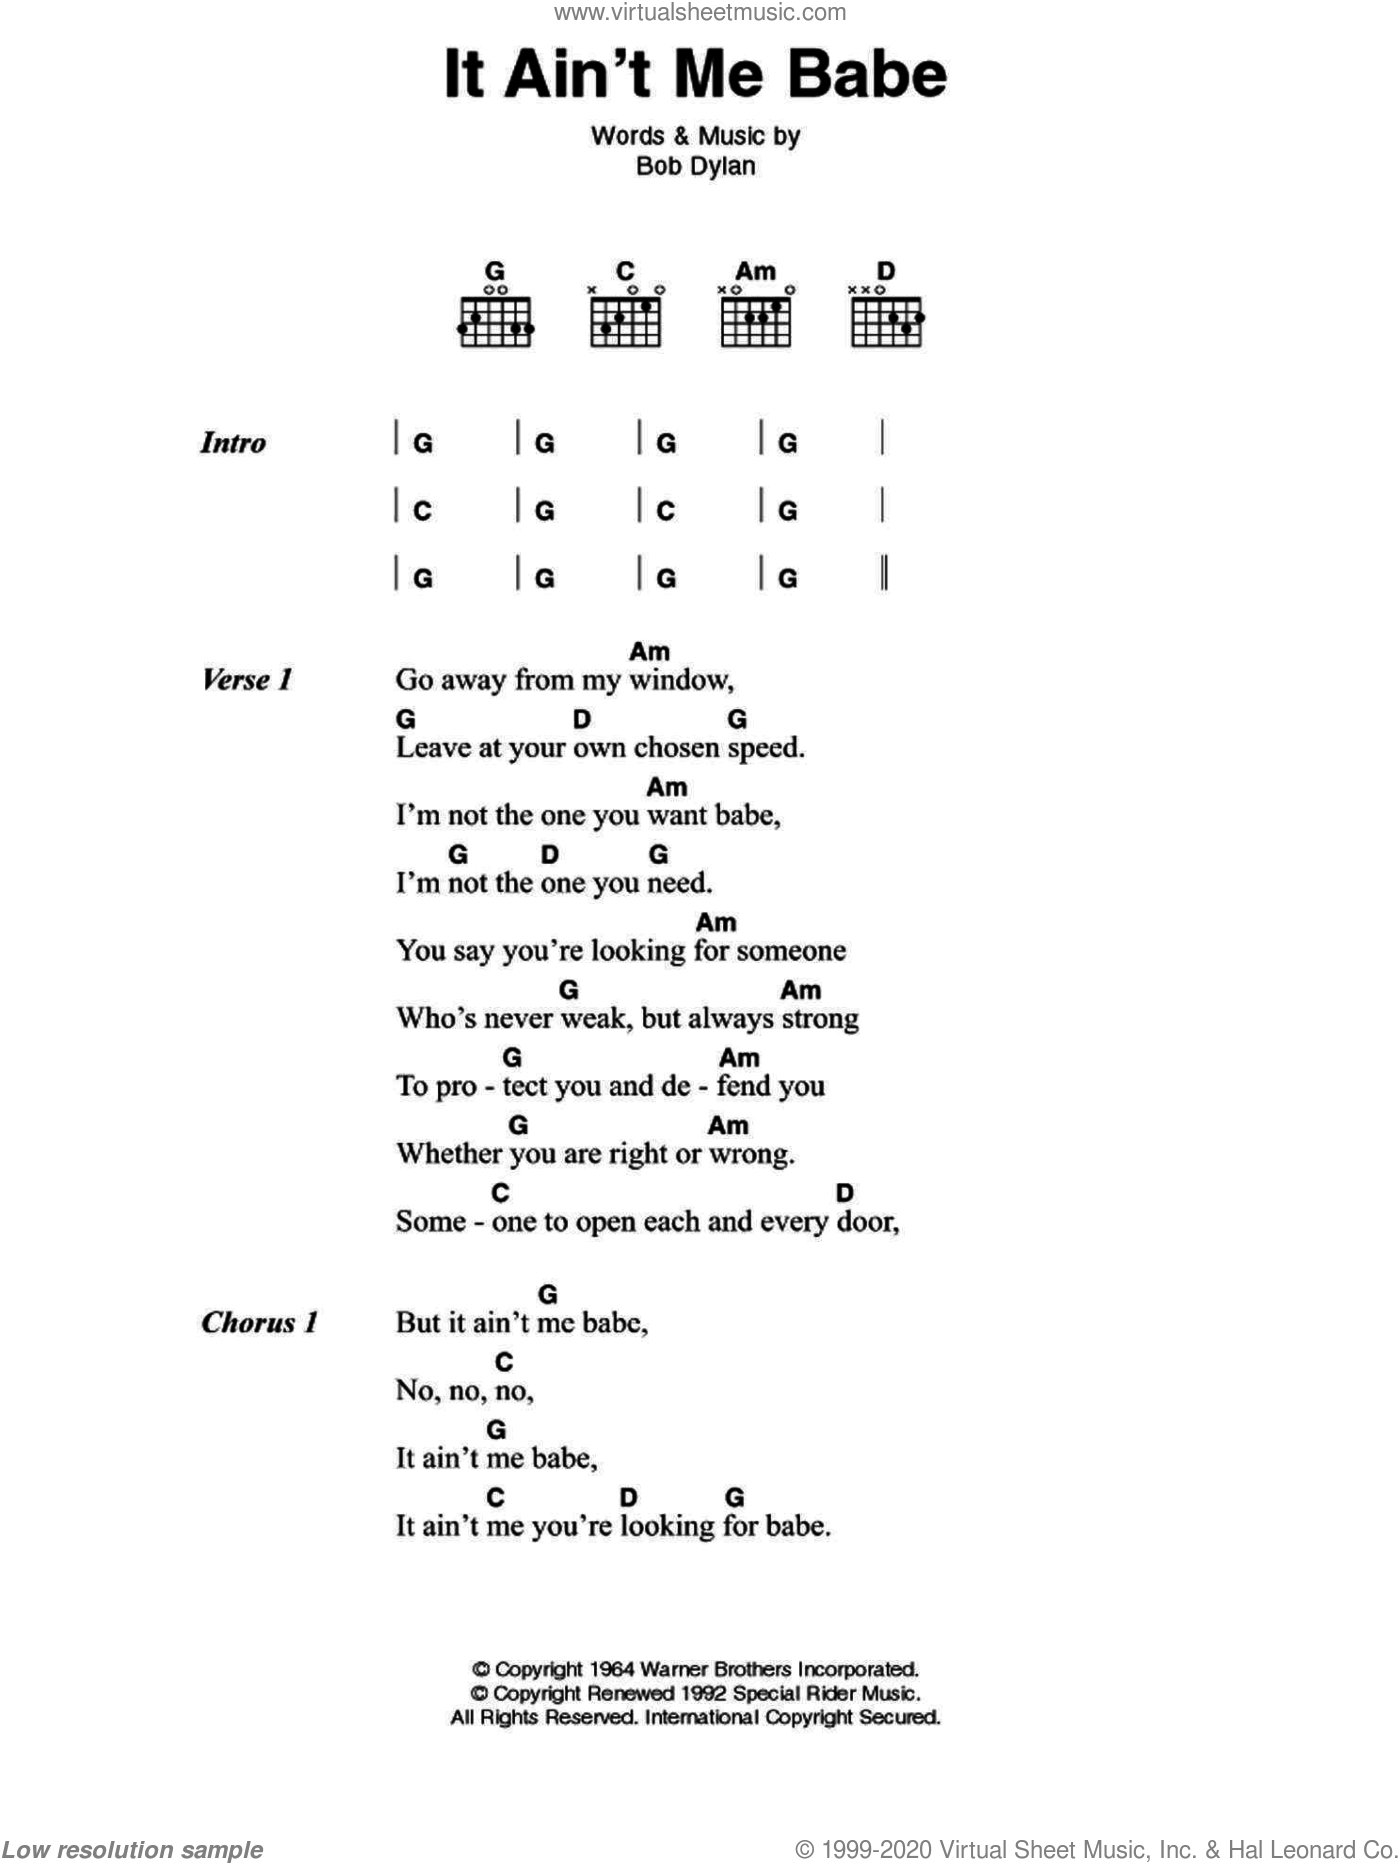 It Ain't Me Babe sheet music for guitar (chords) by Johnny Cash and Bob Dylan, intermediate skill level